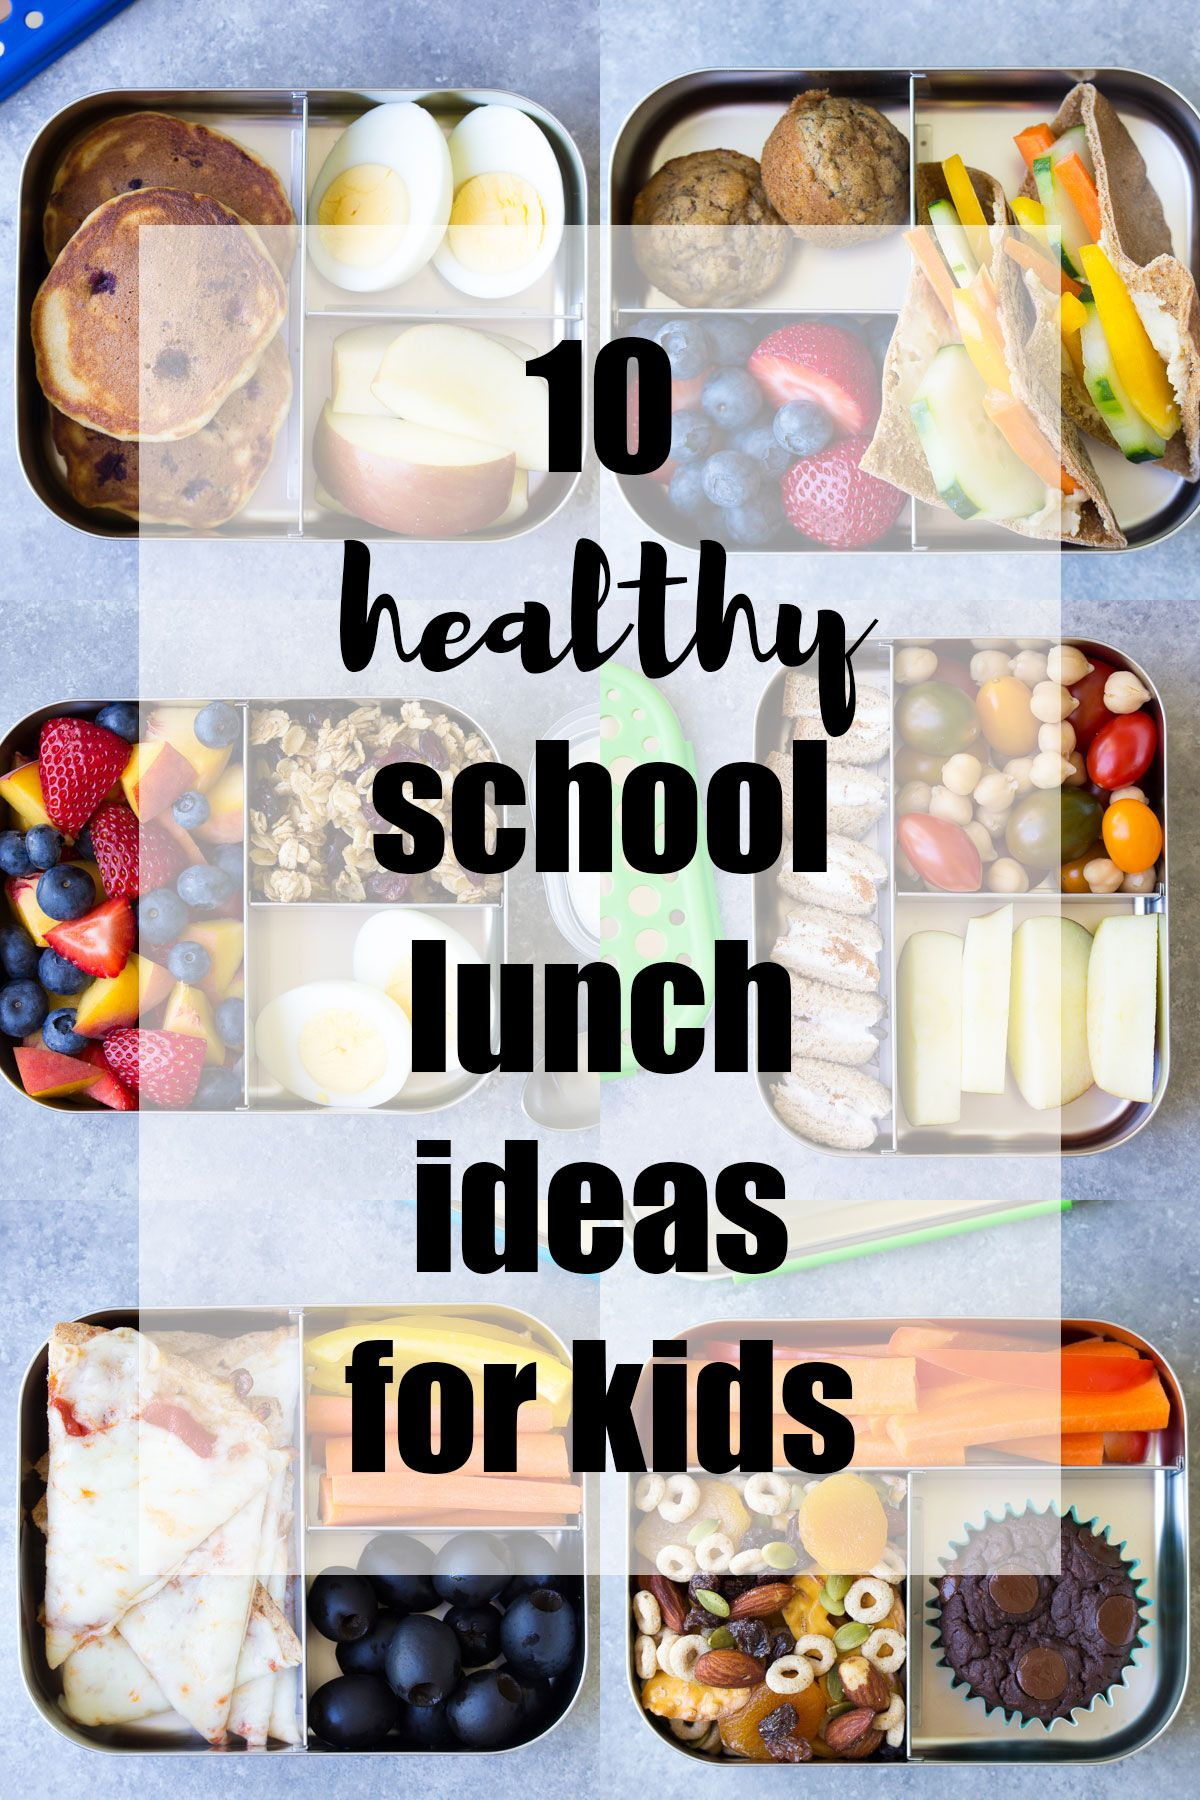 10 Healthy Lunch Ideas For Kids Bento Box Lunchbox To Pack School Home Or Even Yourself Work Make Packing Lunches Quick And Easy